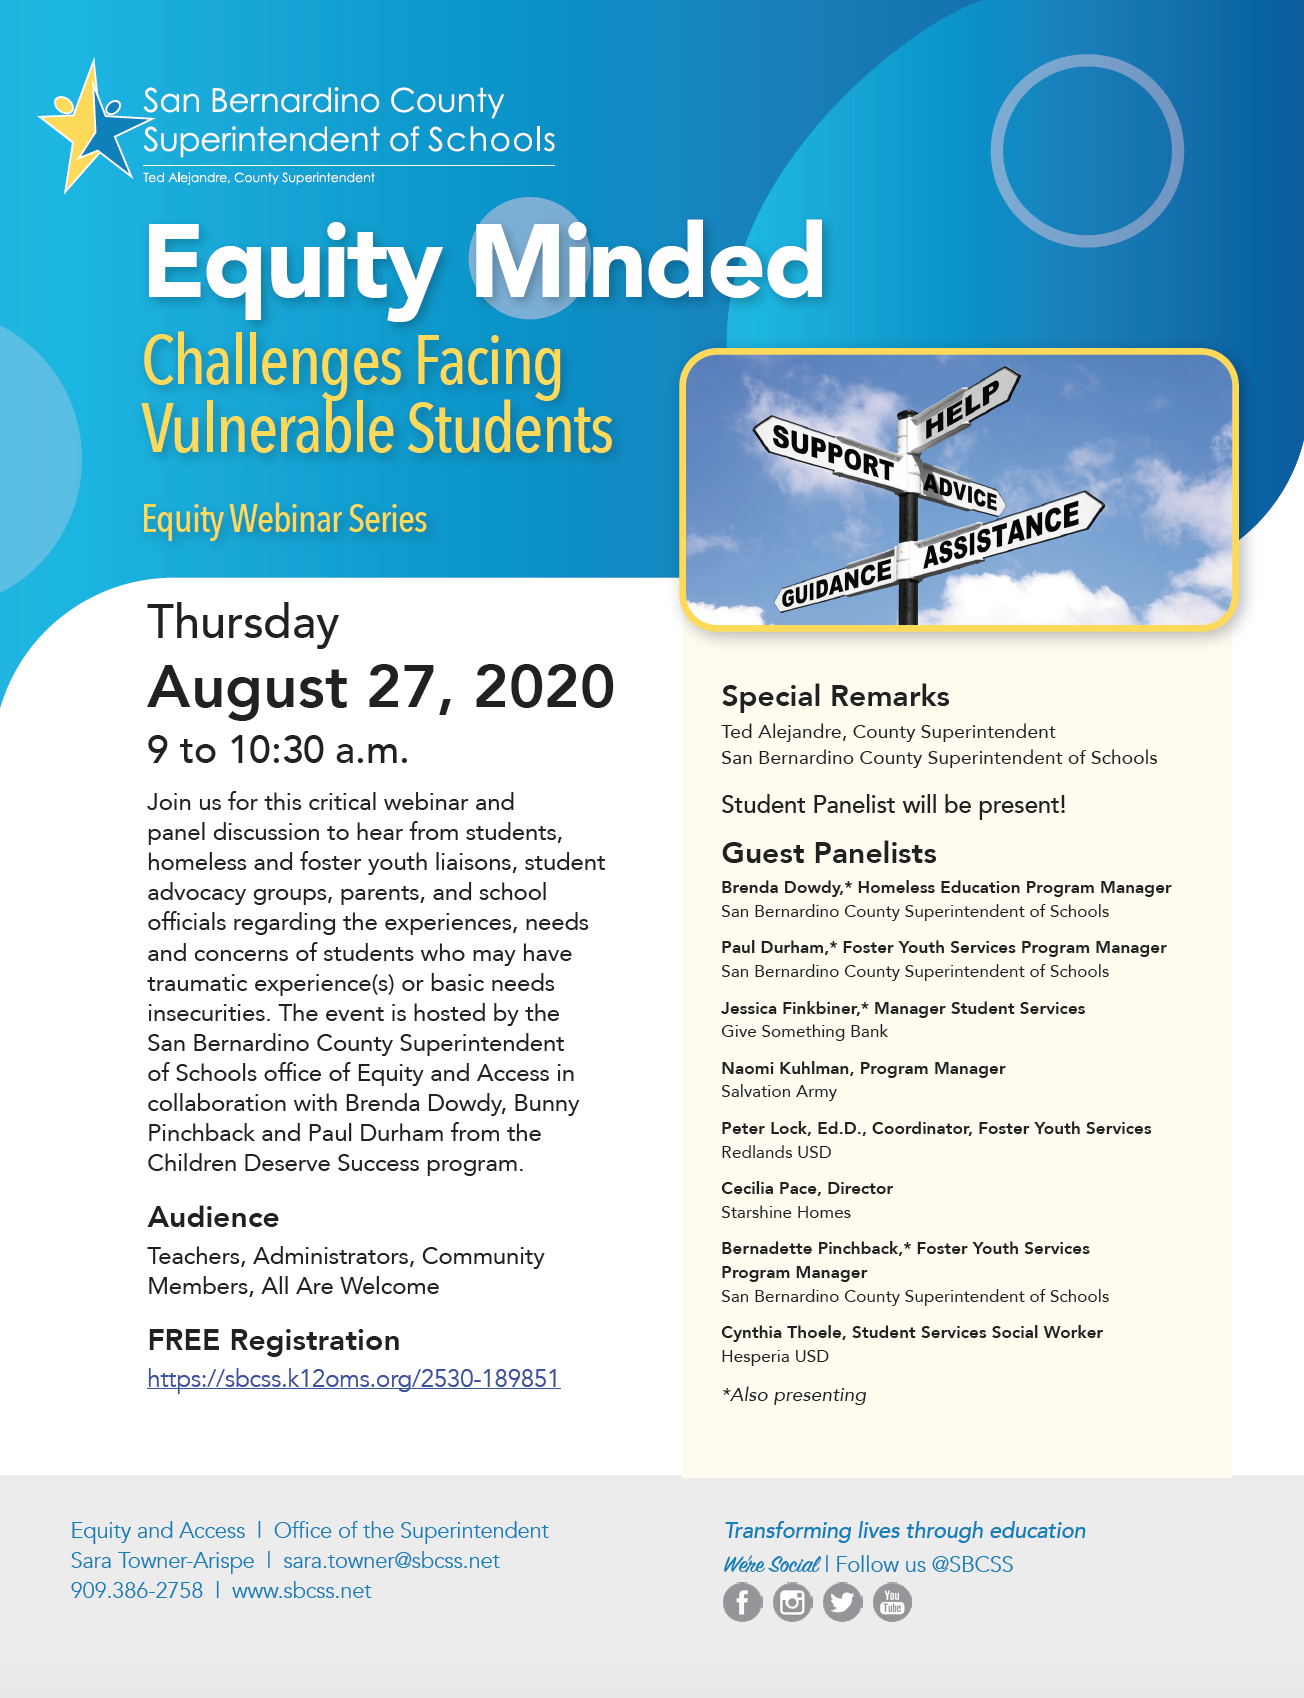 Equity Minded: Challenges Facing Vulnerable Students